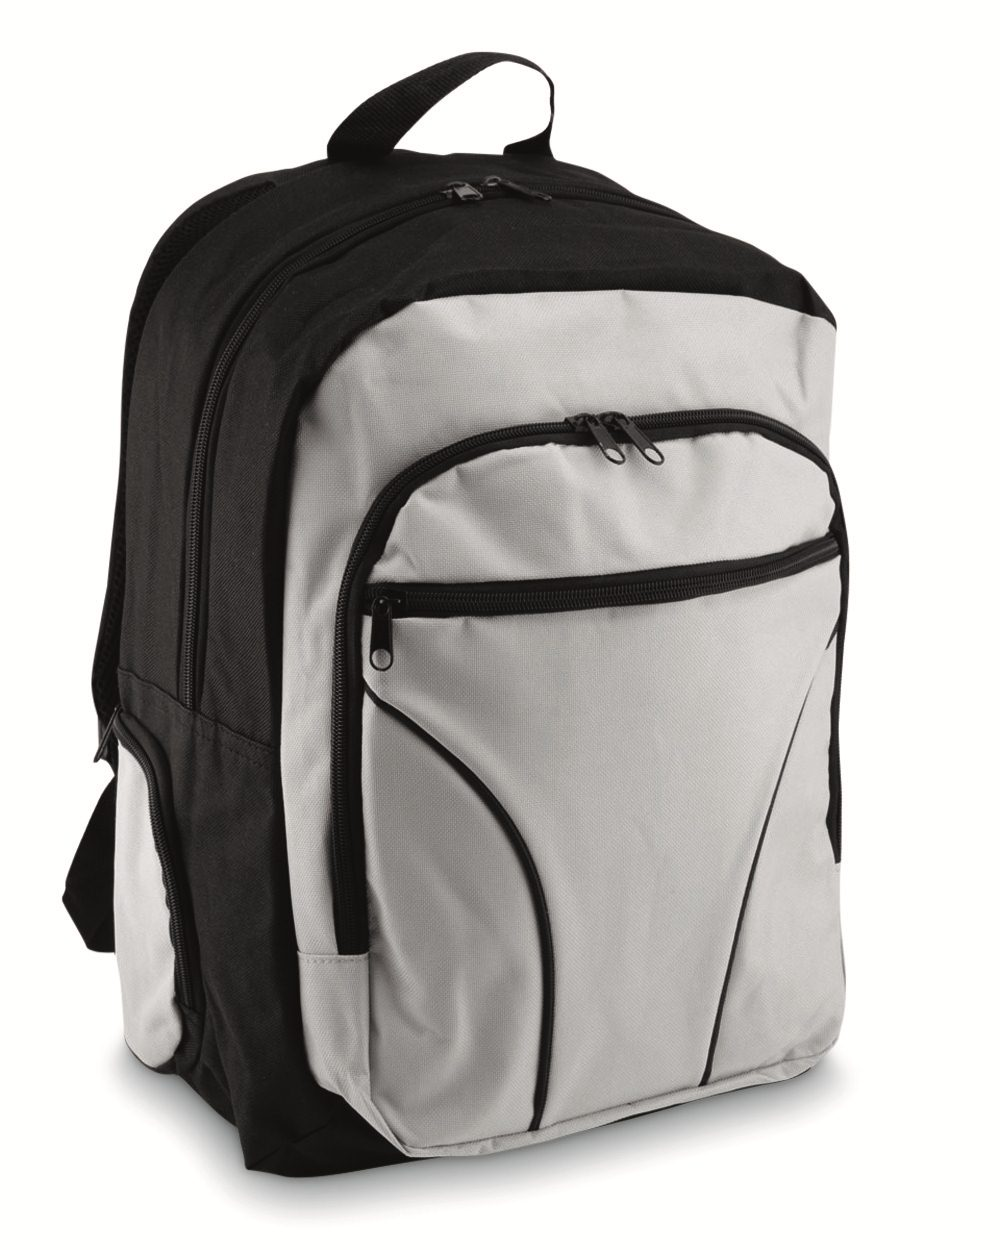 Valubag 19 Inch Laptop Backpack - VB1157